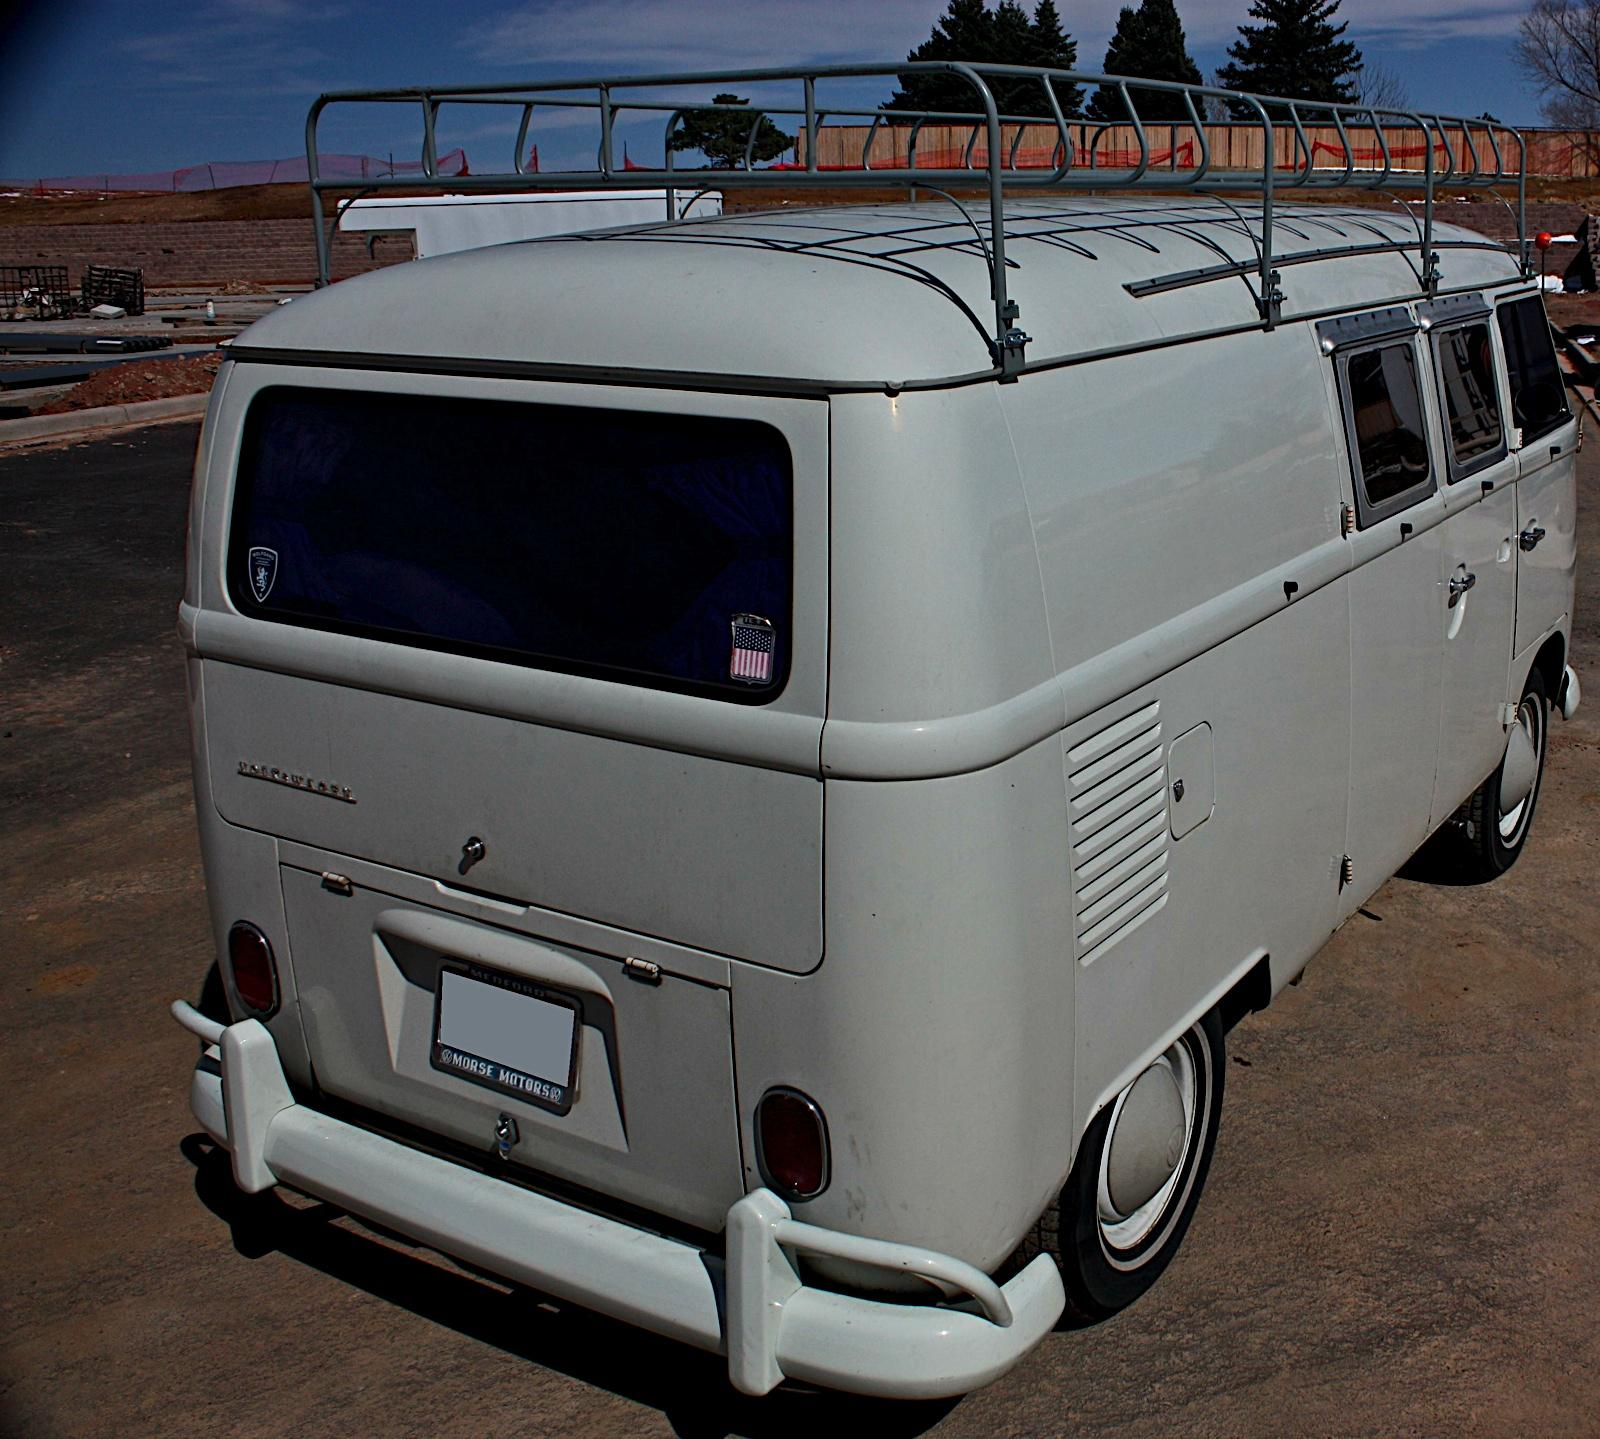 Trying to locate this 1966 Roadrunner tintop Bus camper